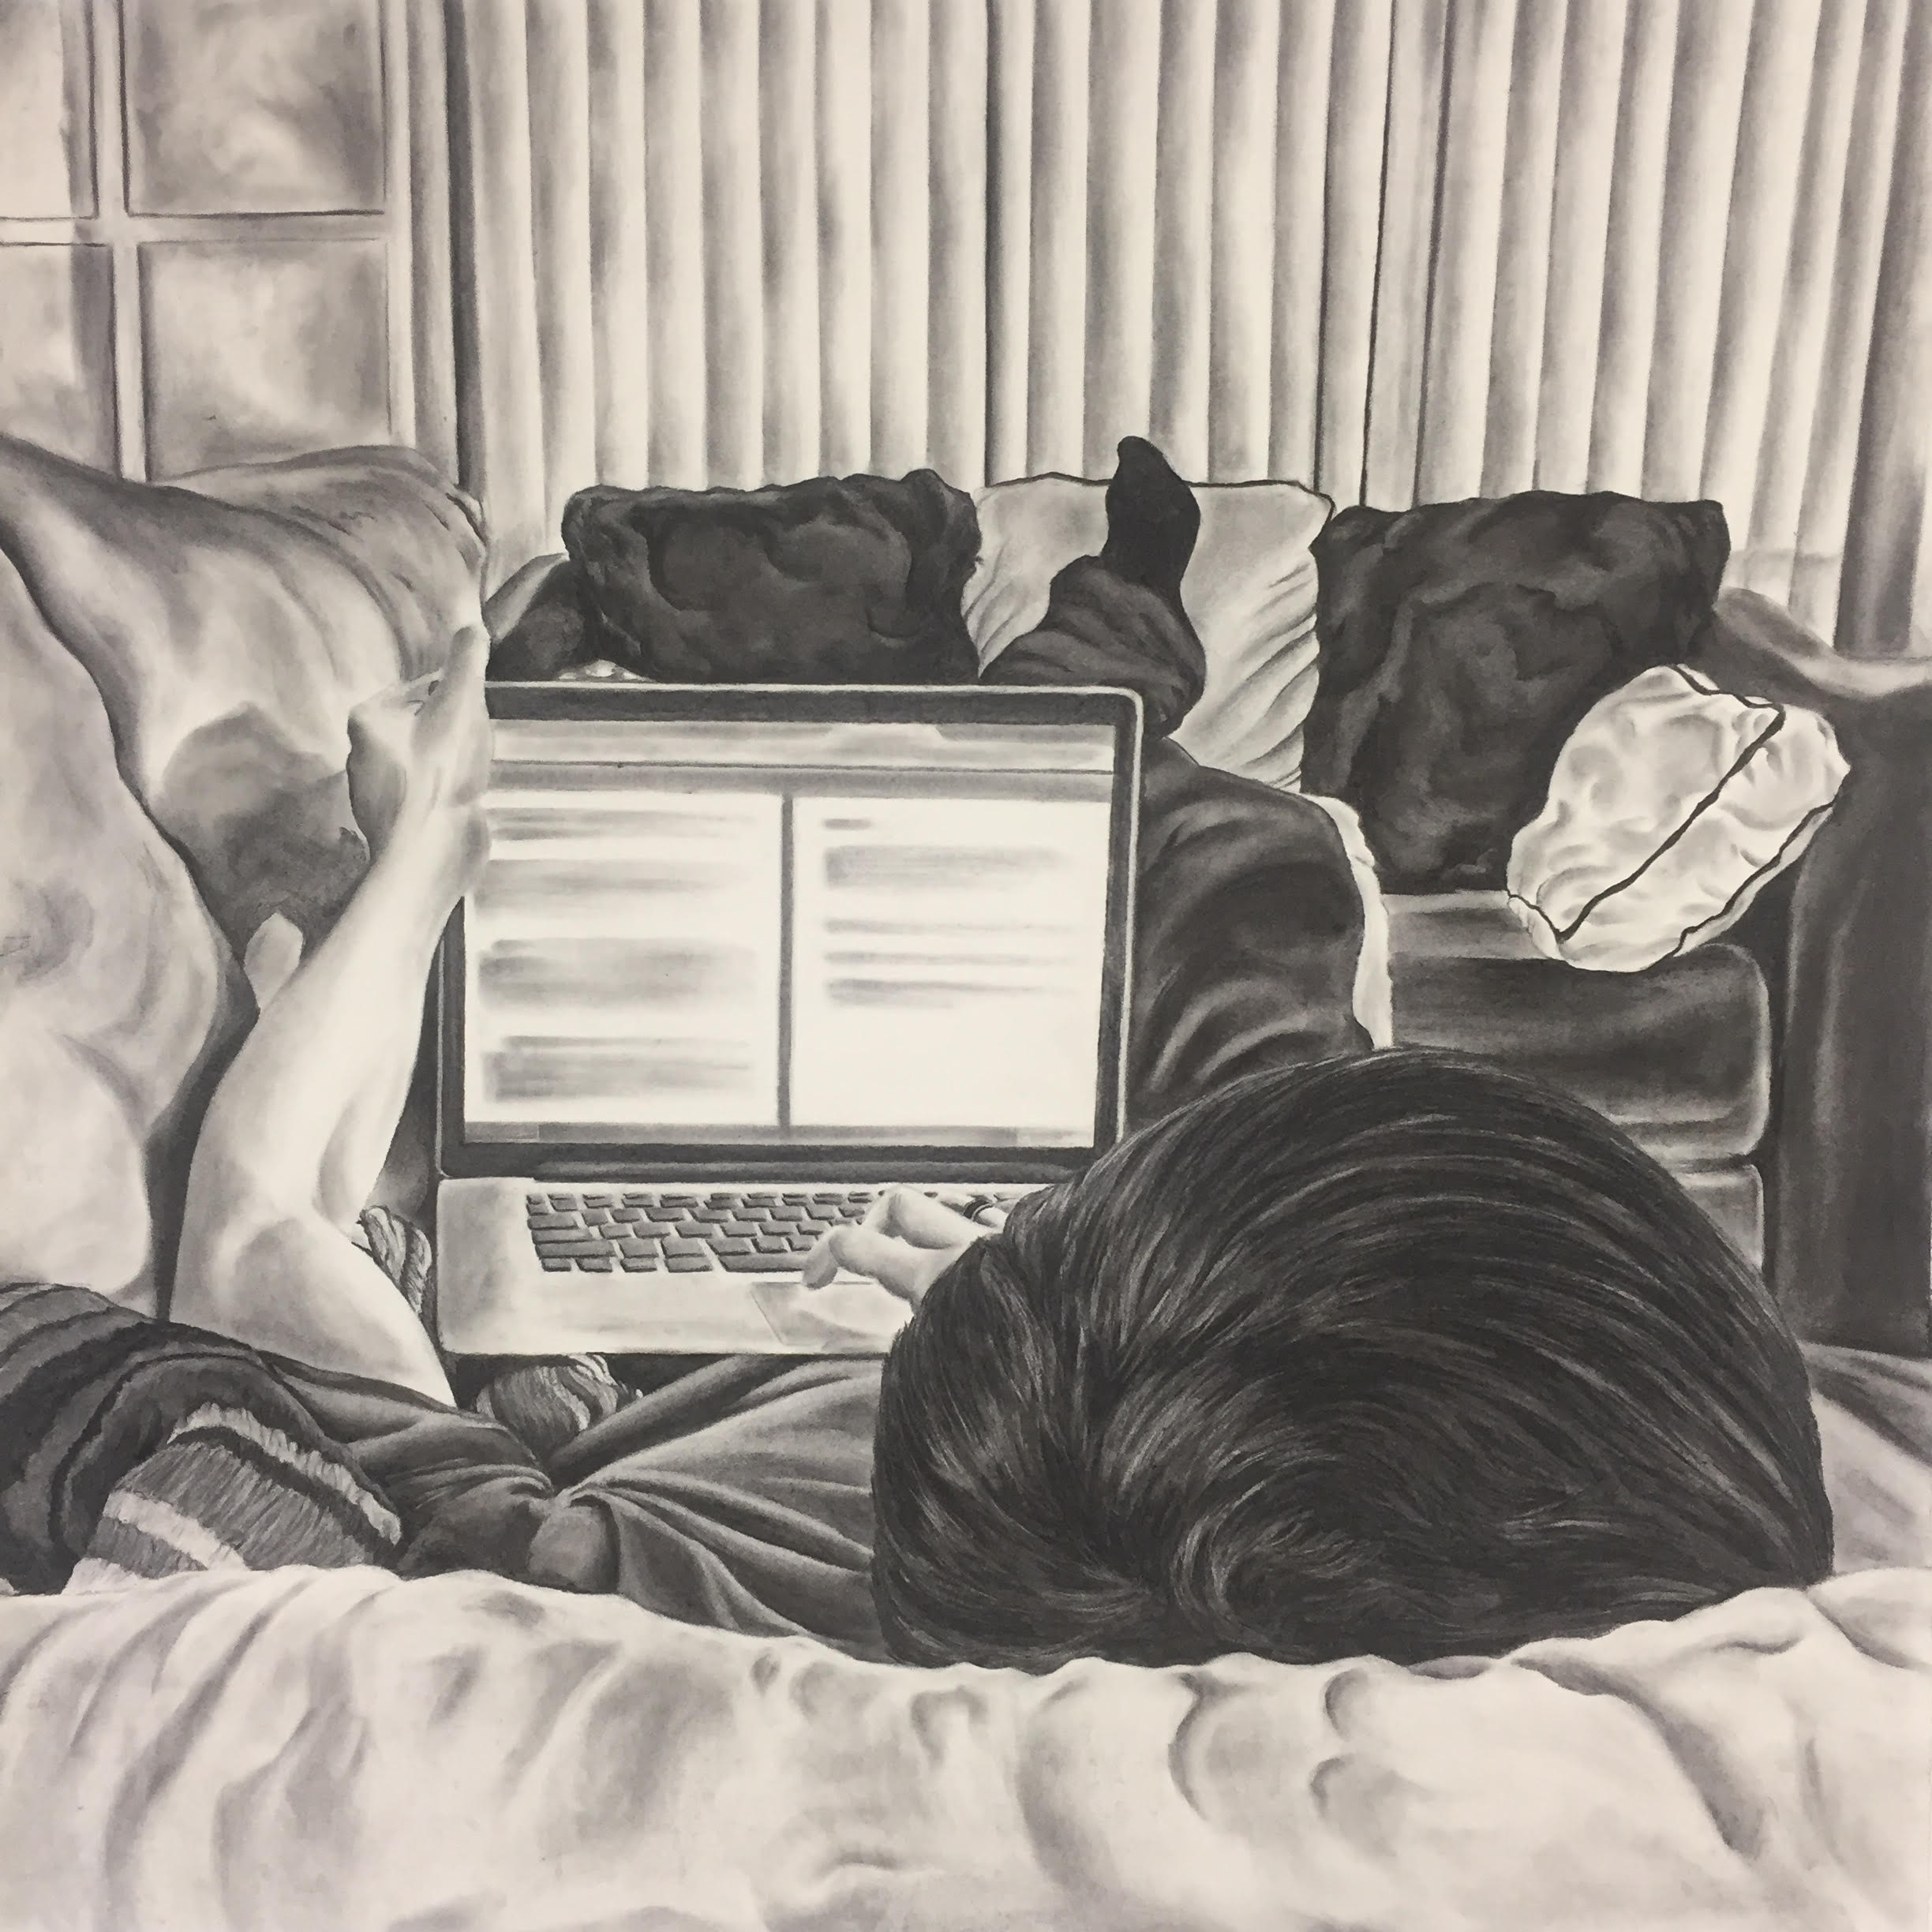 El Chico del Apartamento 202, 2019, charcoal on paper, 36x36""